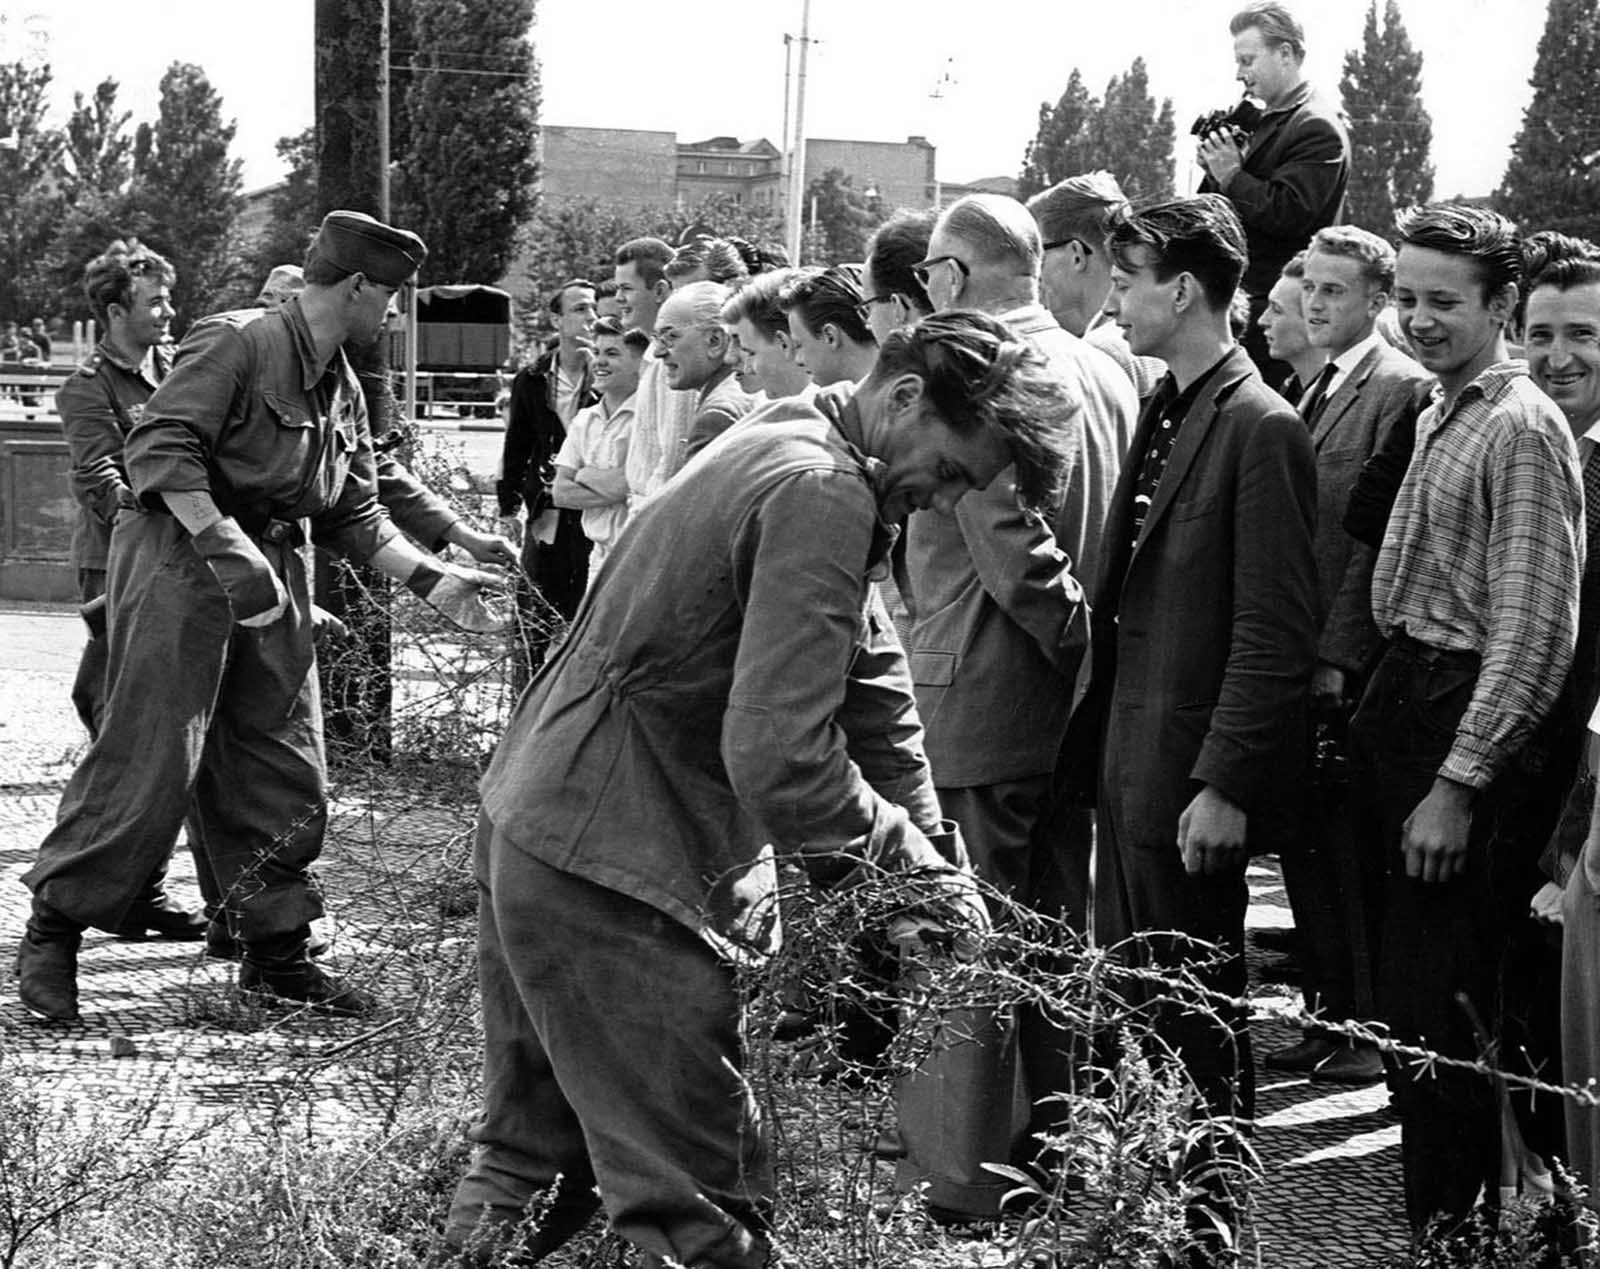 On August 13, 1961, East Germany closed its borders with the west. Here, East German soldiers set up barbed wire barricades at the border separating East and West Berlin. West Berlin citizens watch the work.